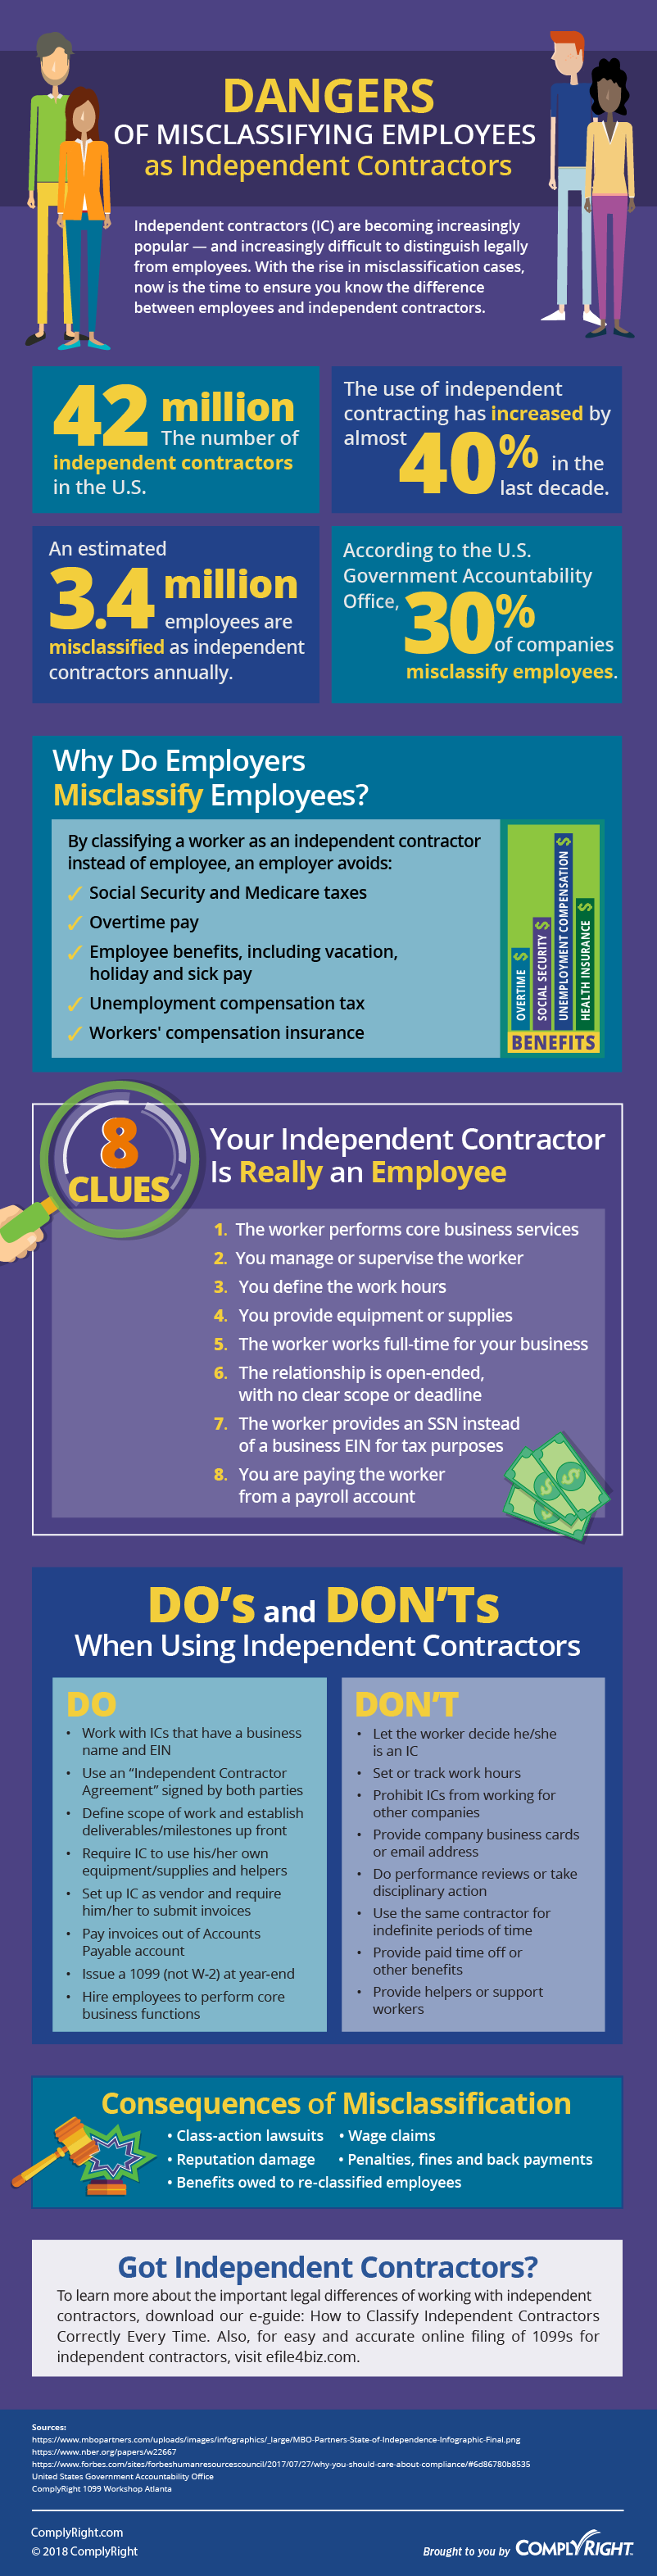 Dangers of Misclassifying Employees as Independent Contractors